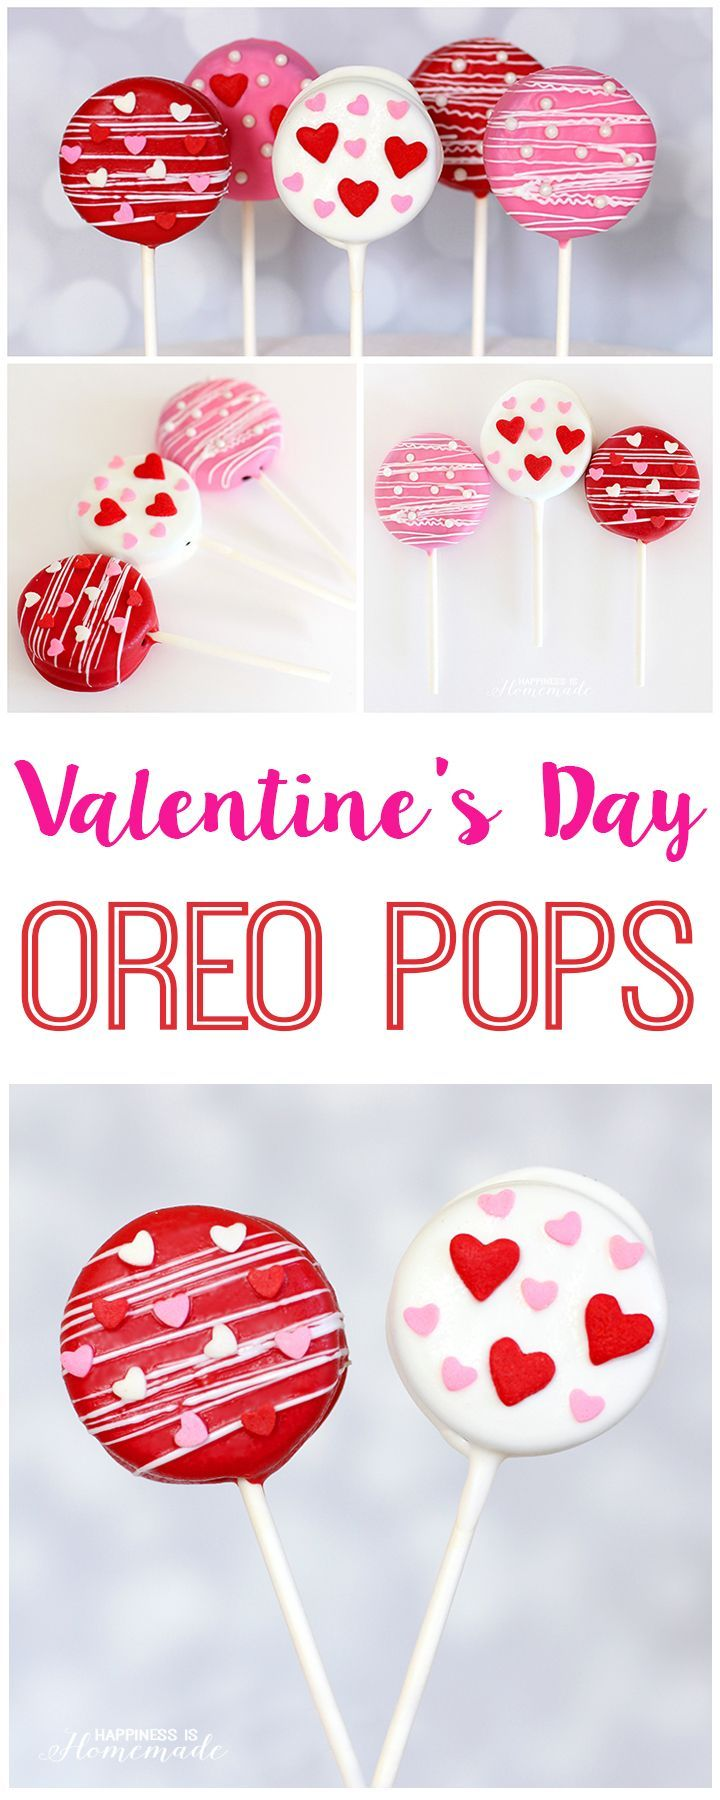 Super Cute Valentine's Day Oreo Pops! - Happiness is Homemade